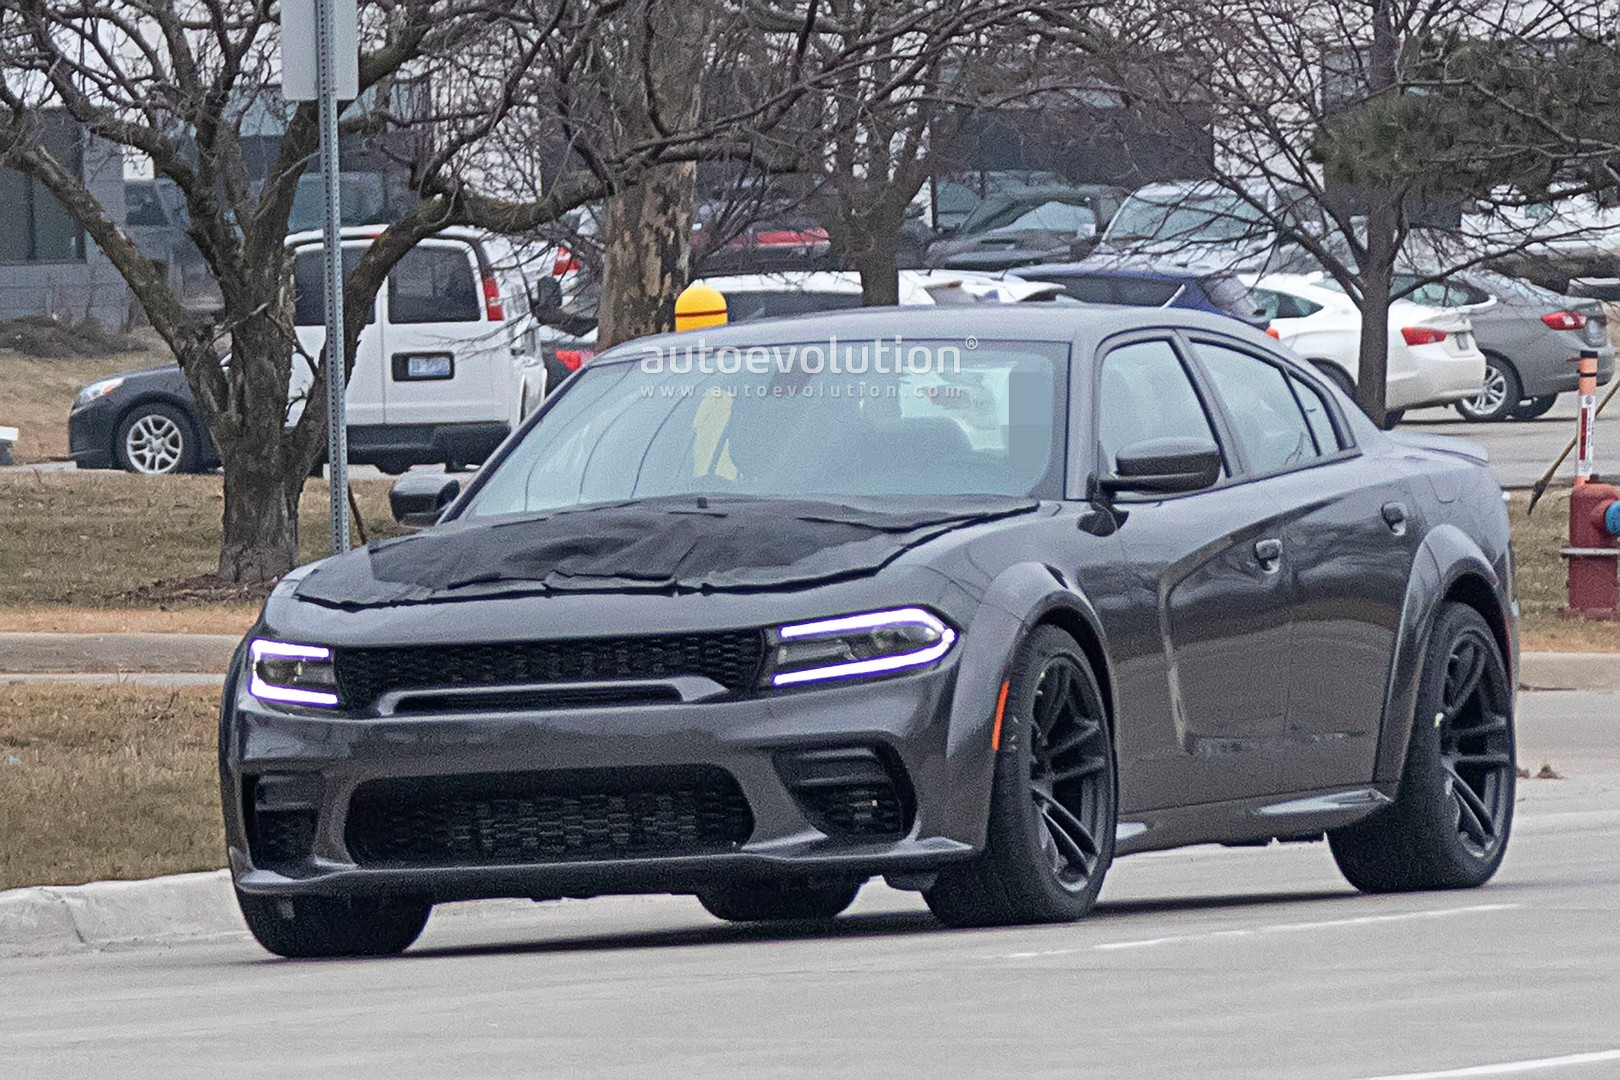 2021 Dodge Charger Hellcat Redeye Widebody Spied, Is ...